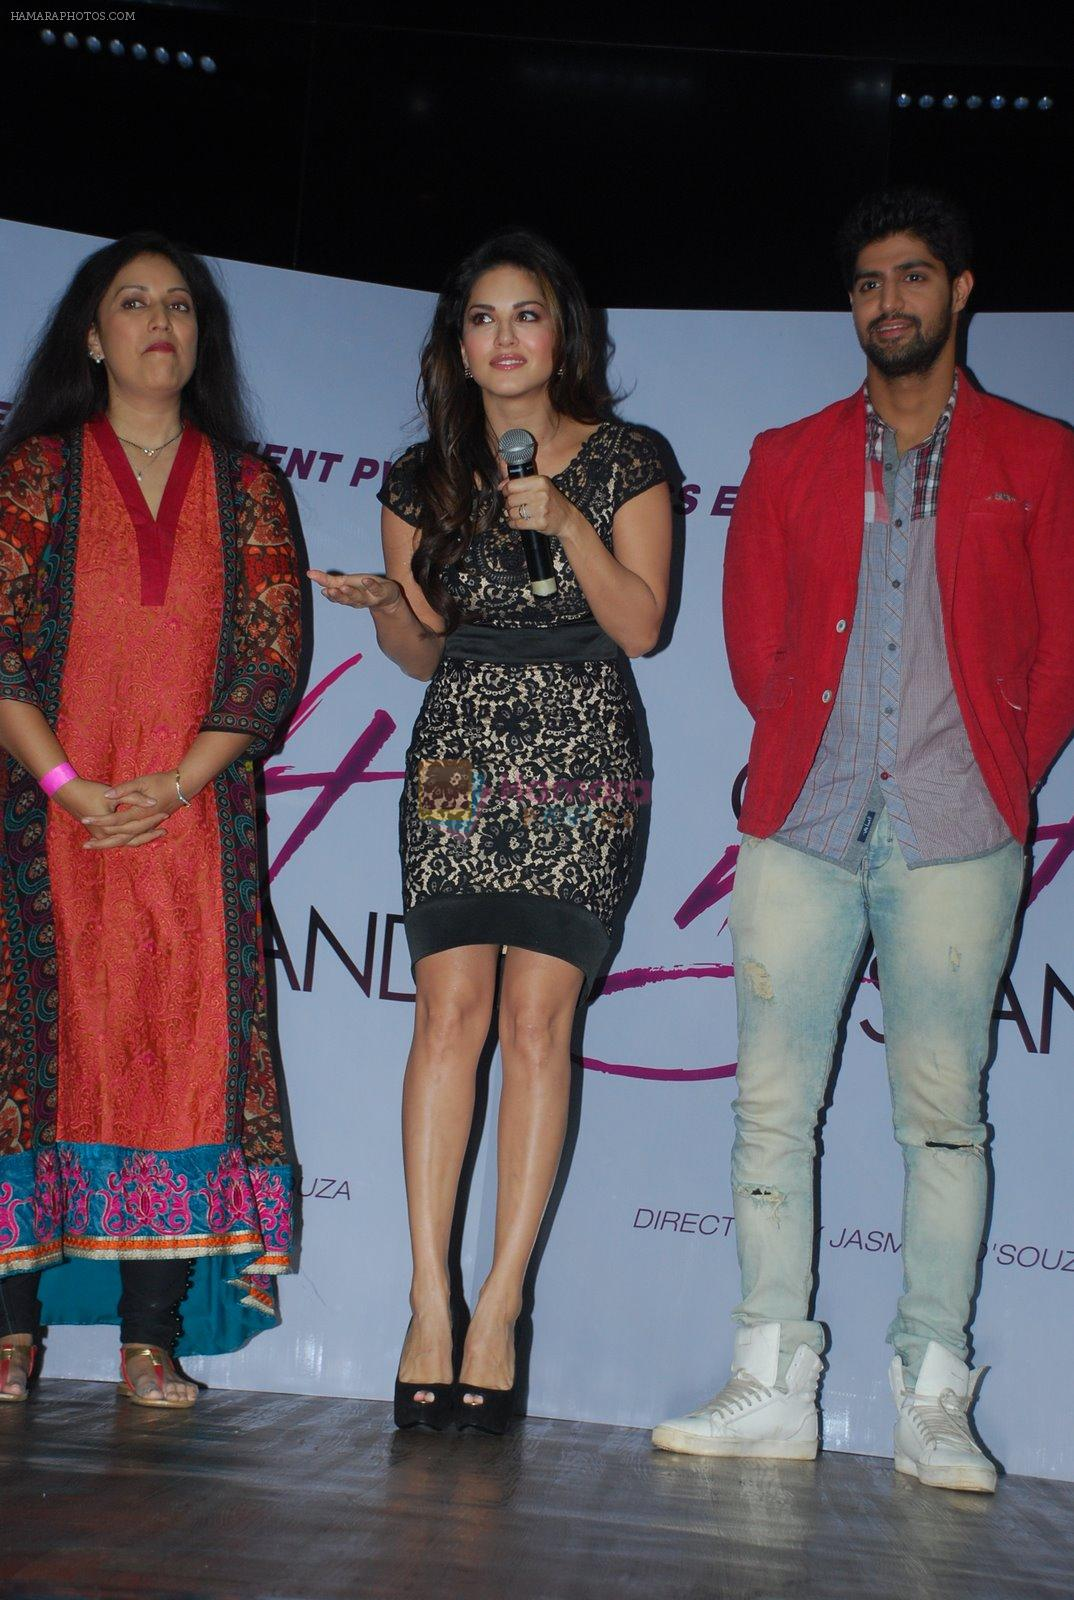 Sunny leone, Tanuj Virwani at One Night stand promotions in Mumbai on 24th Dec 2014